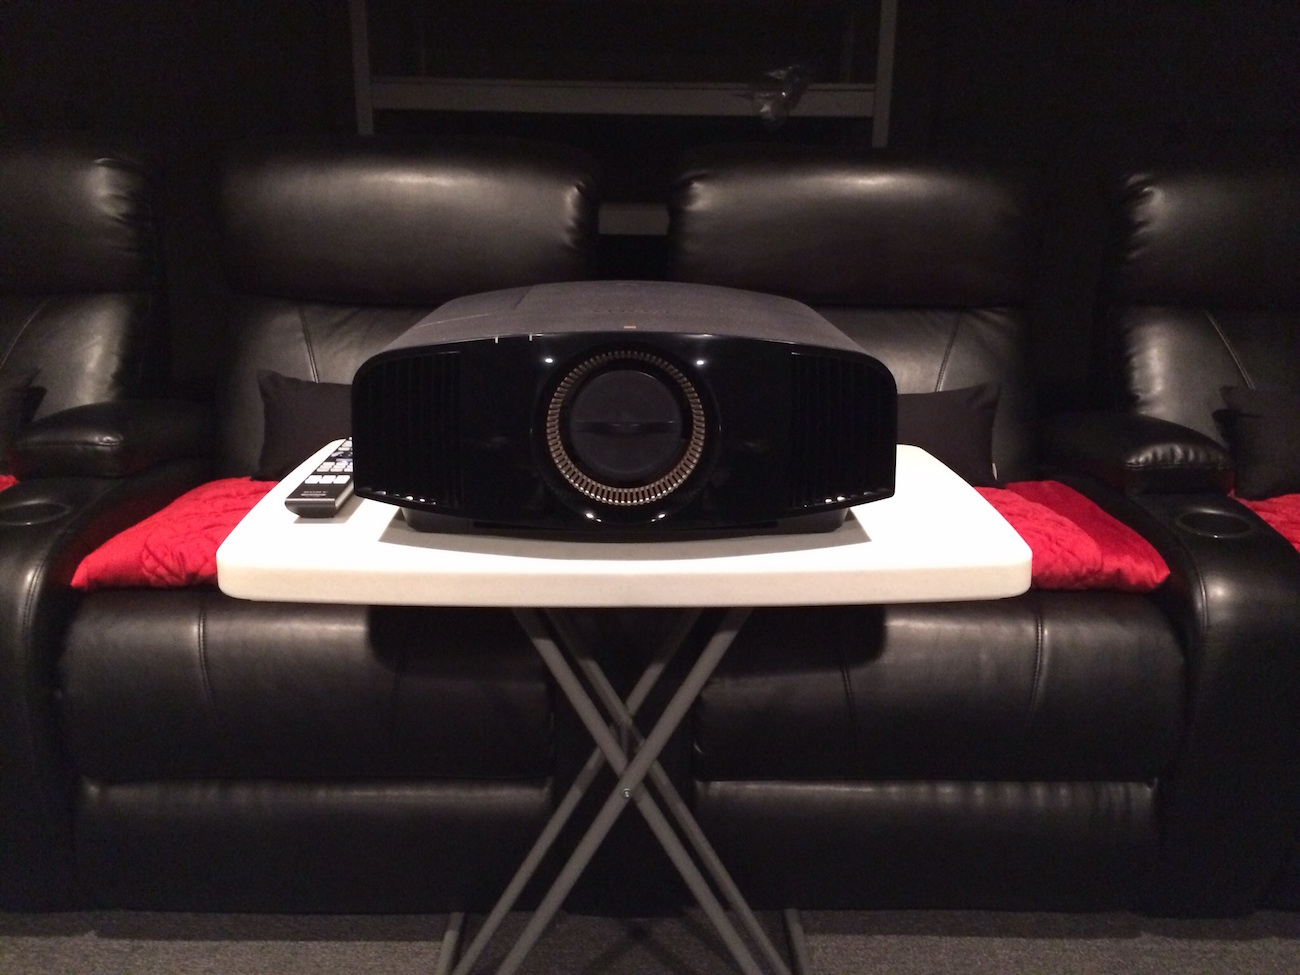 sony-4k-3d-sxrd-home-theatergaming-projector-01